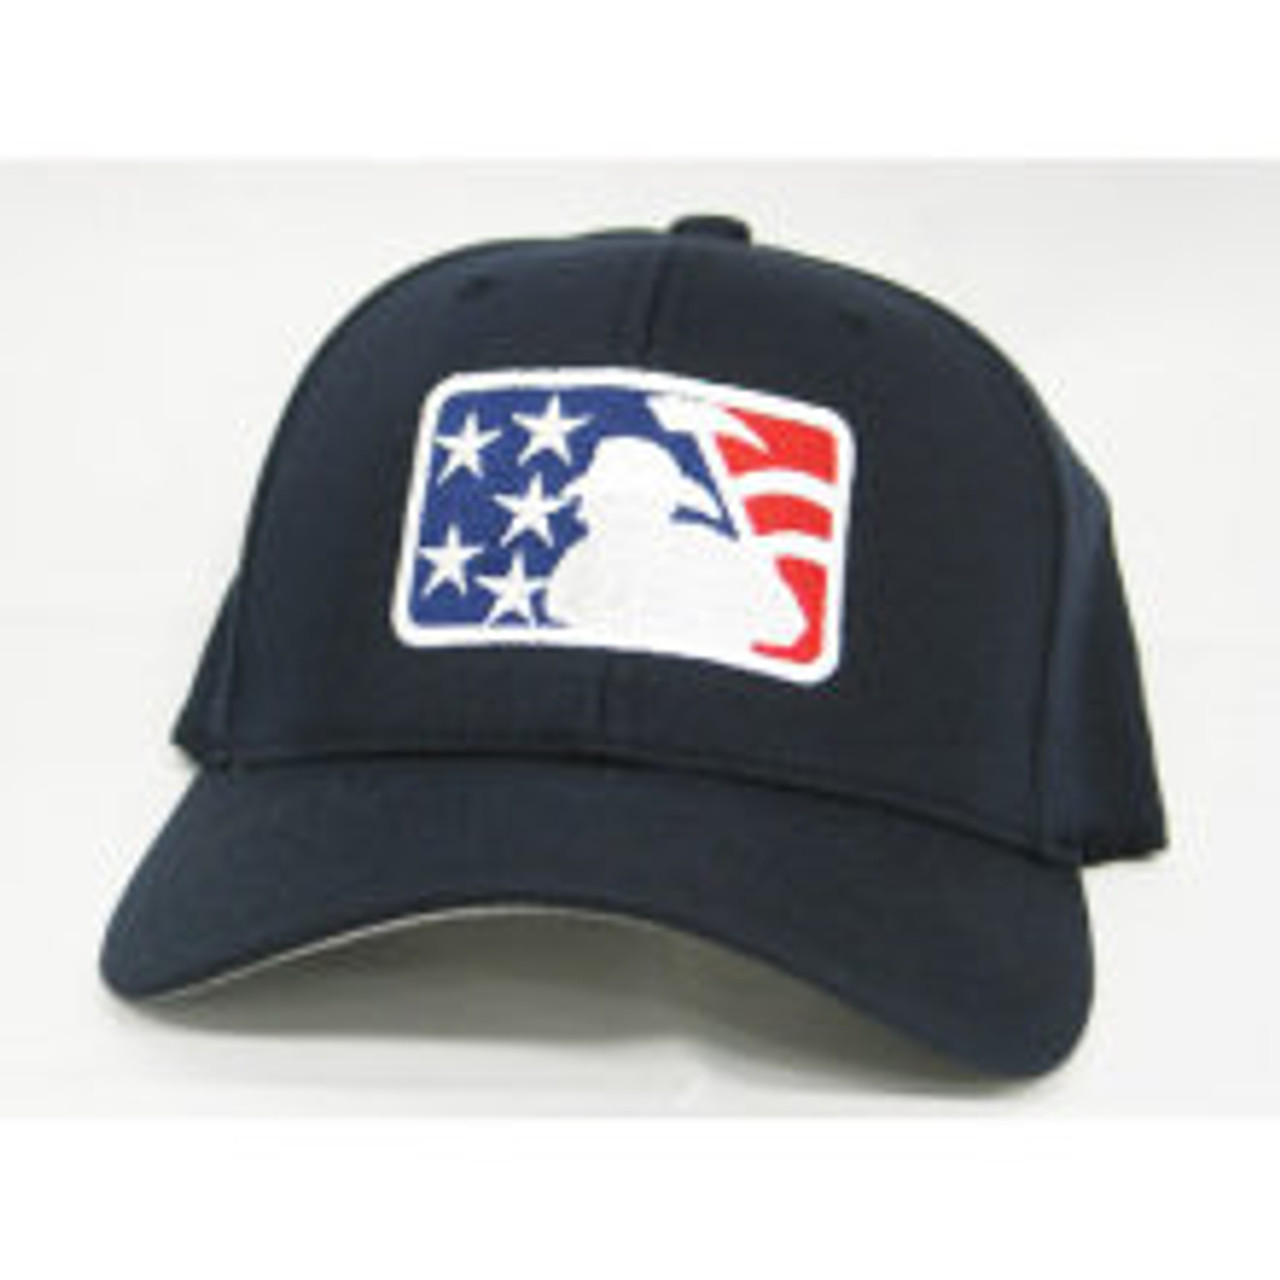 All American Baseball Hat